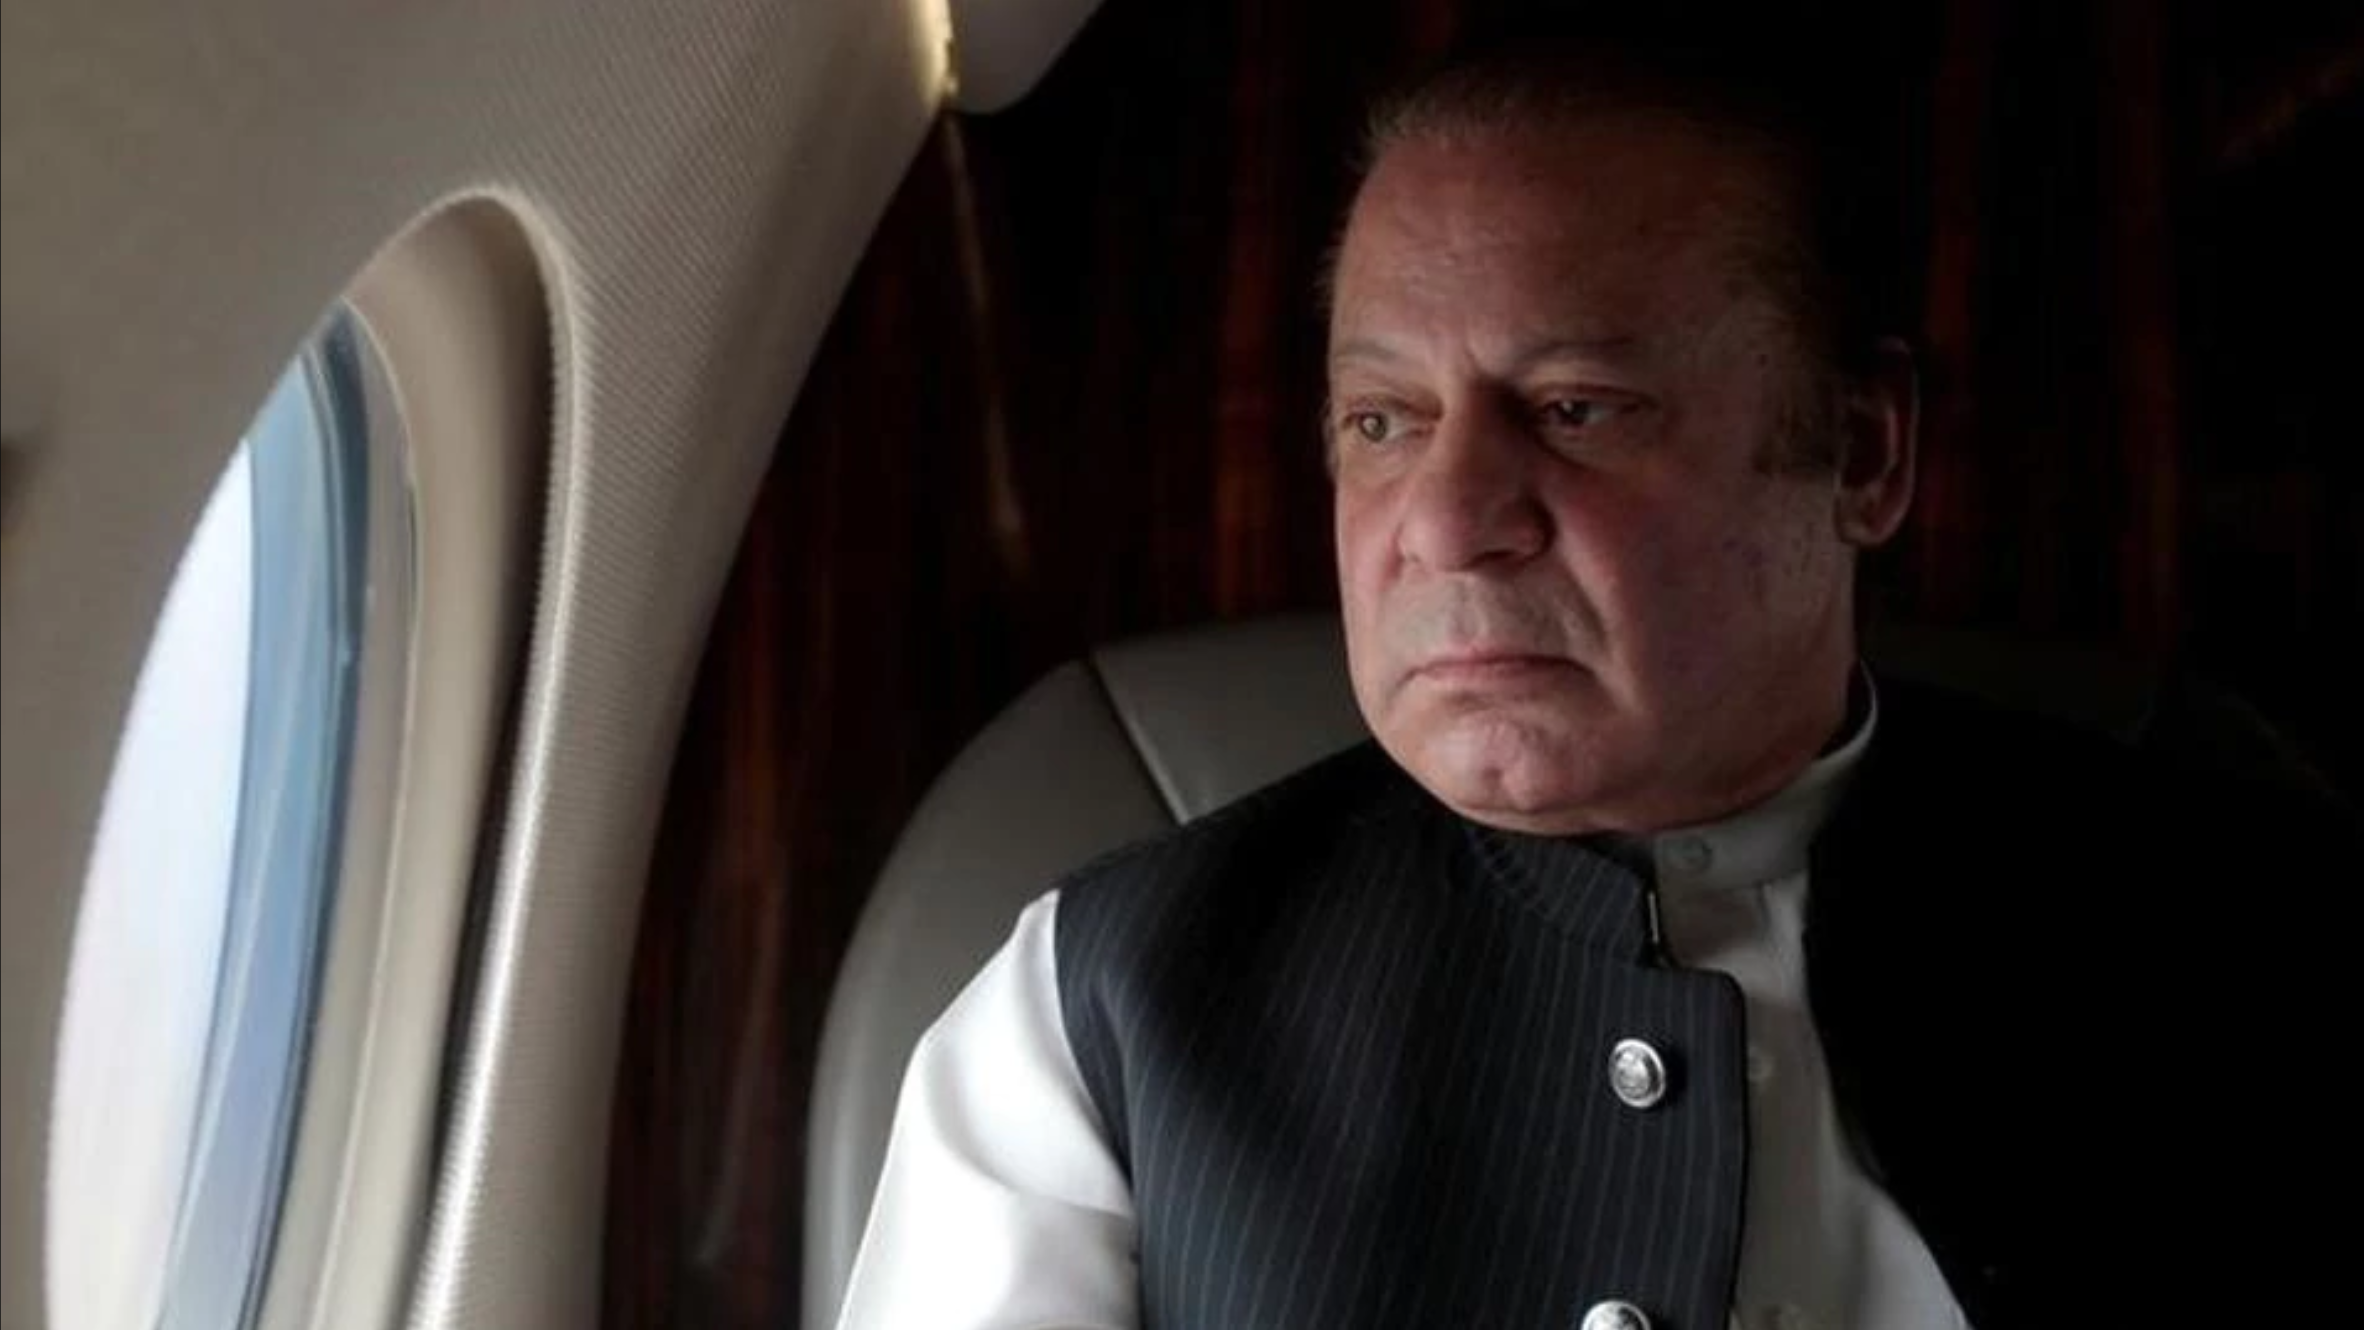 Pakistan's ousted prime minister Nawaz Sharif is expected to be formally charged today